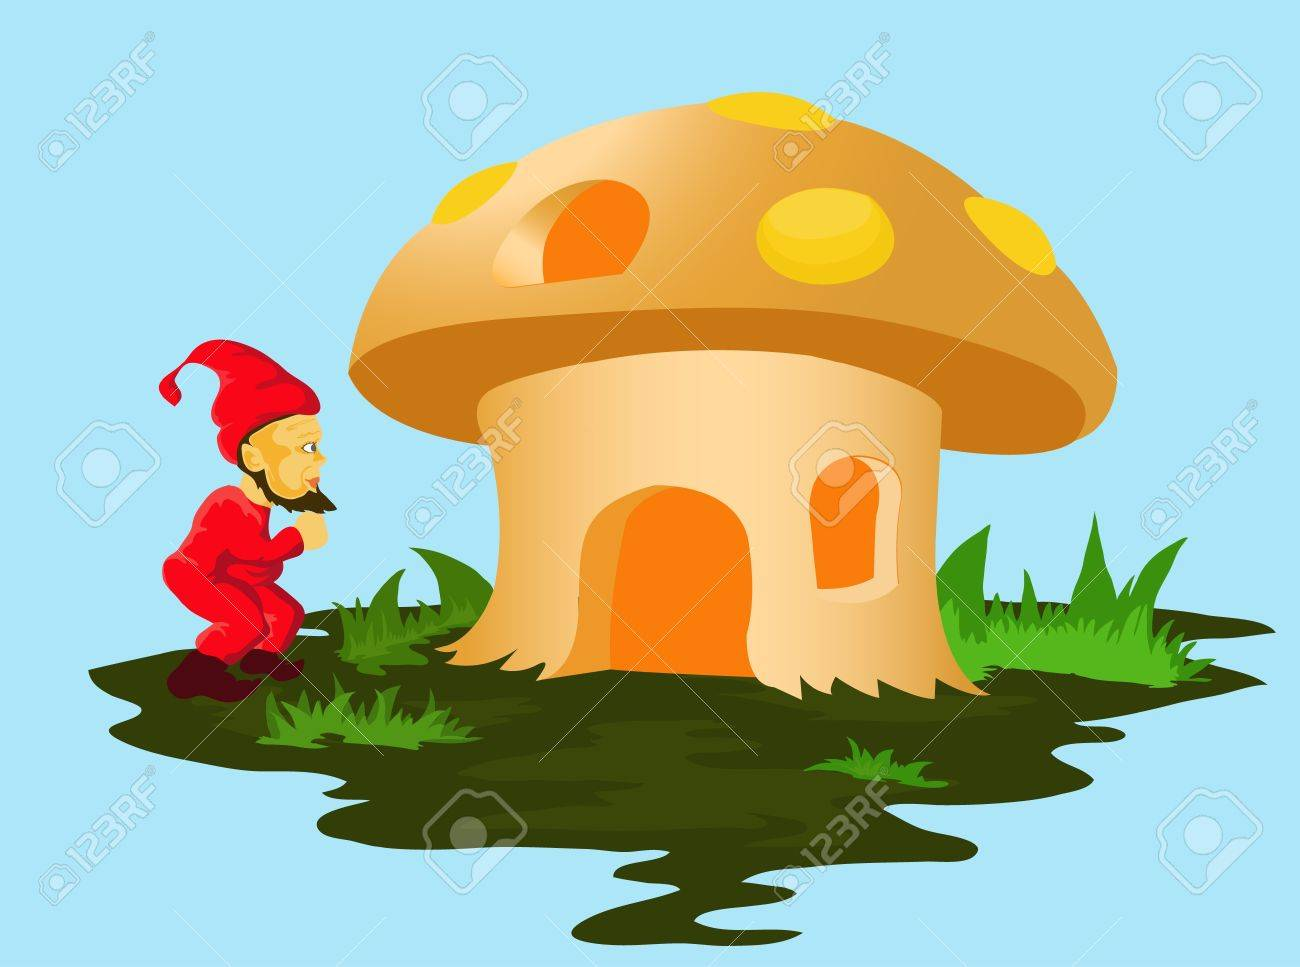 gnomes stock photos royalty free gnomes images and pictures